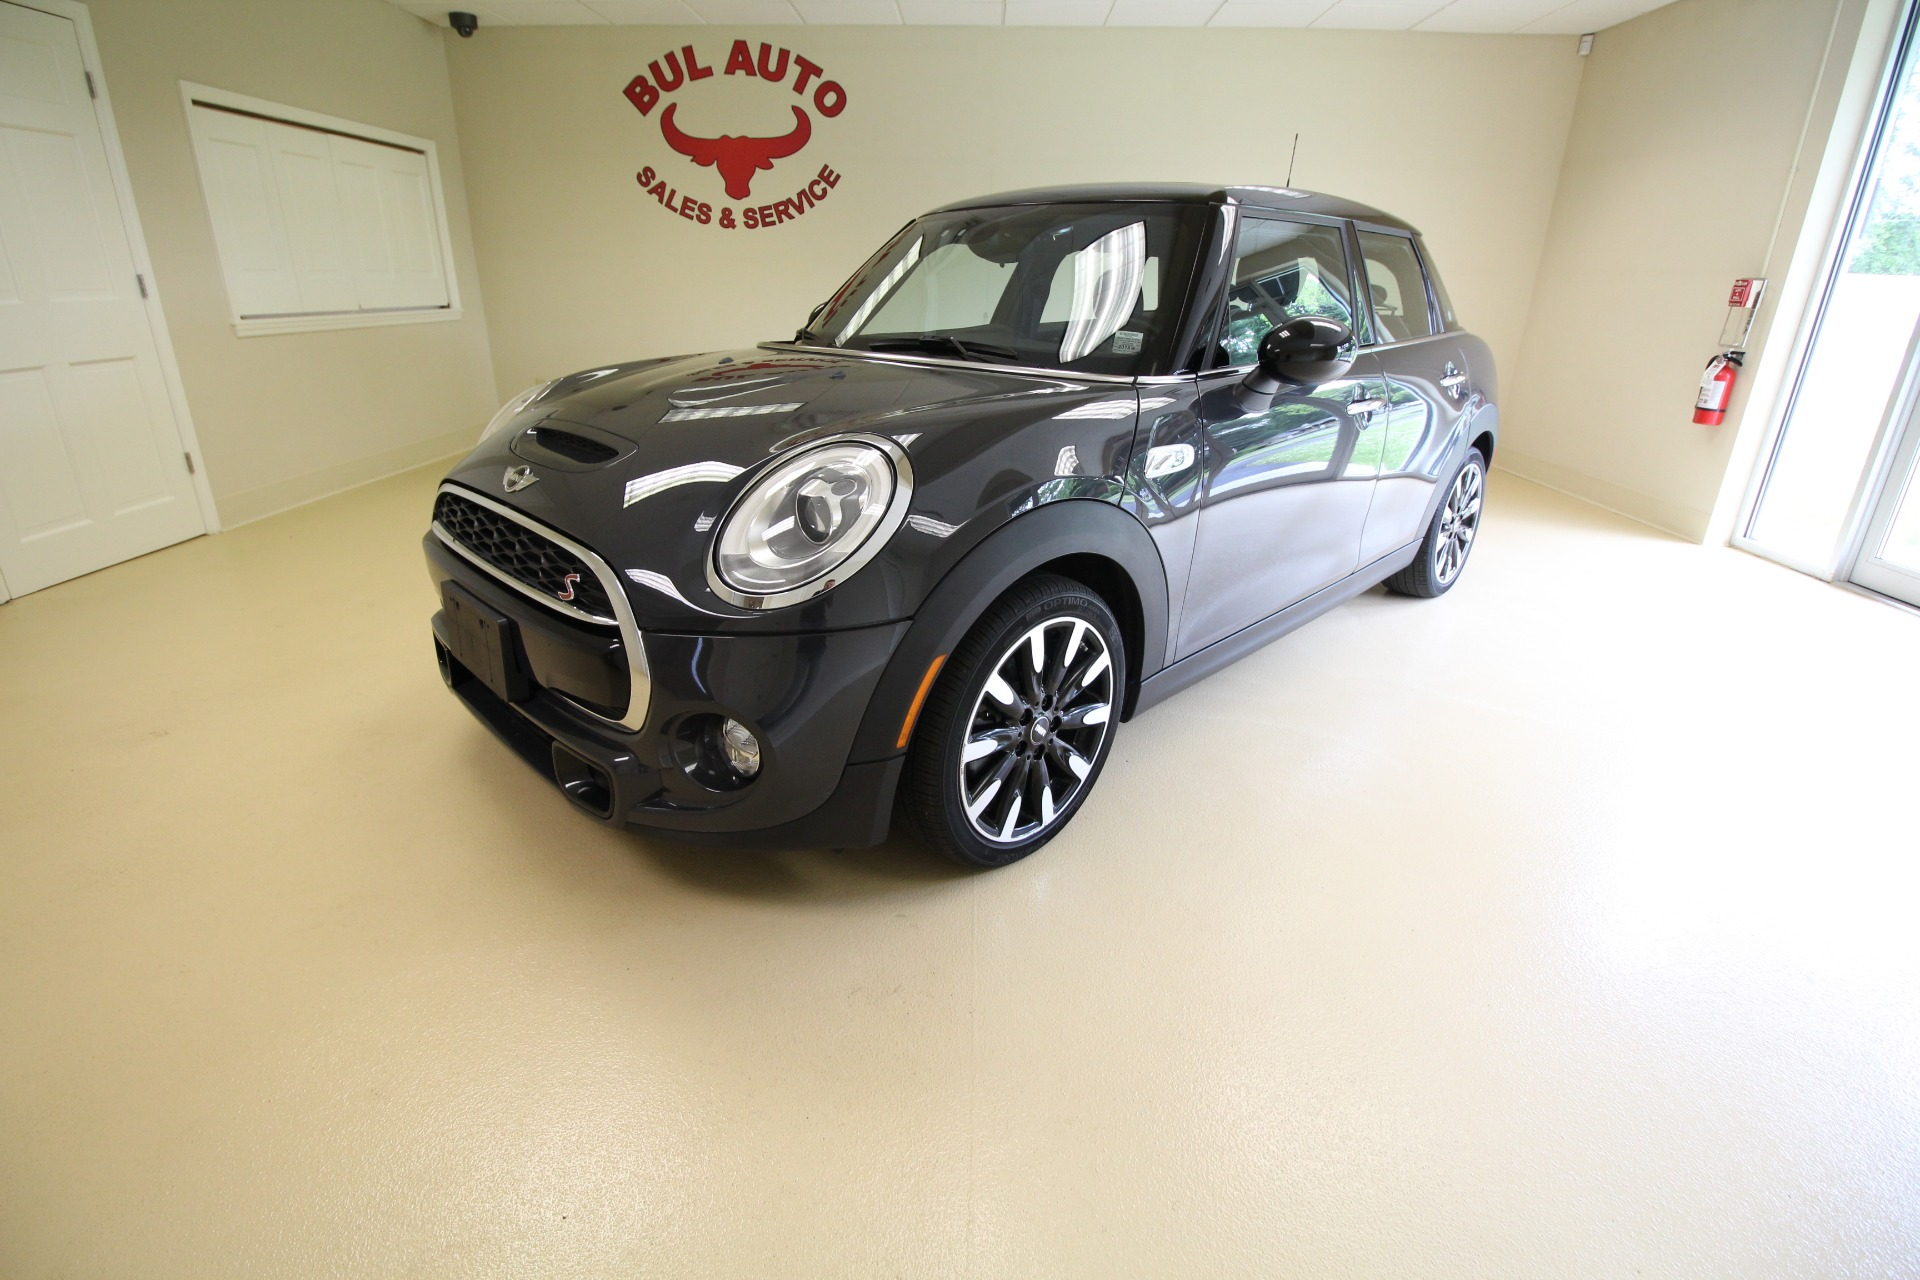 cars for sale near me mini beautiful 2015 mini cooper s stock for sale near albany ny used cars. Black Bedroom Furniture Sets. Home Design Ideas